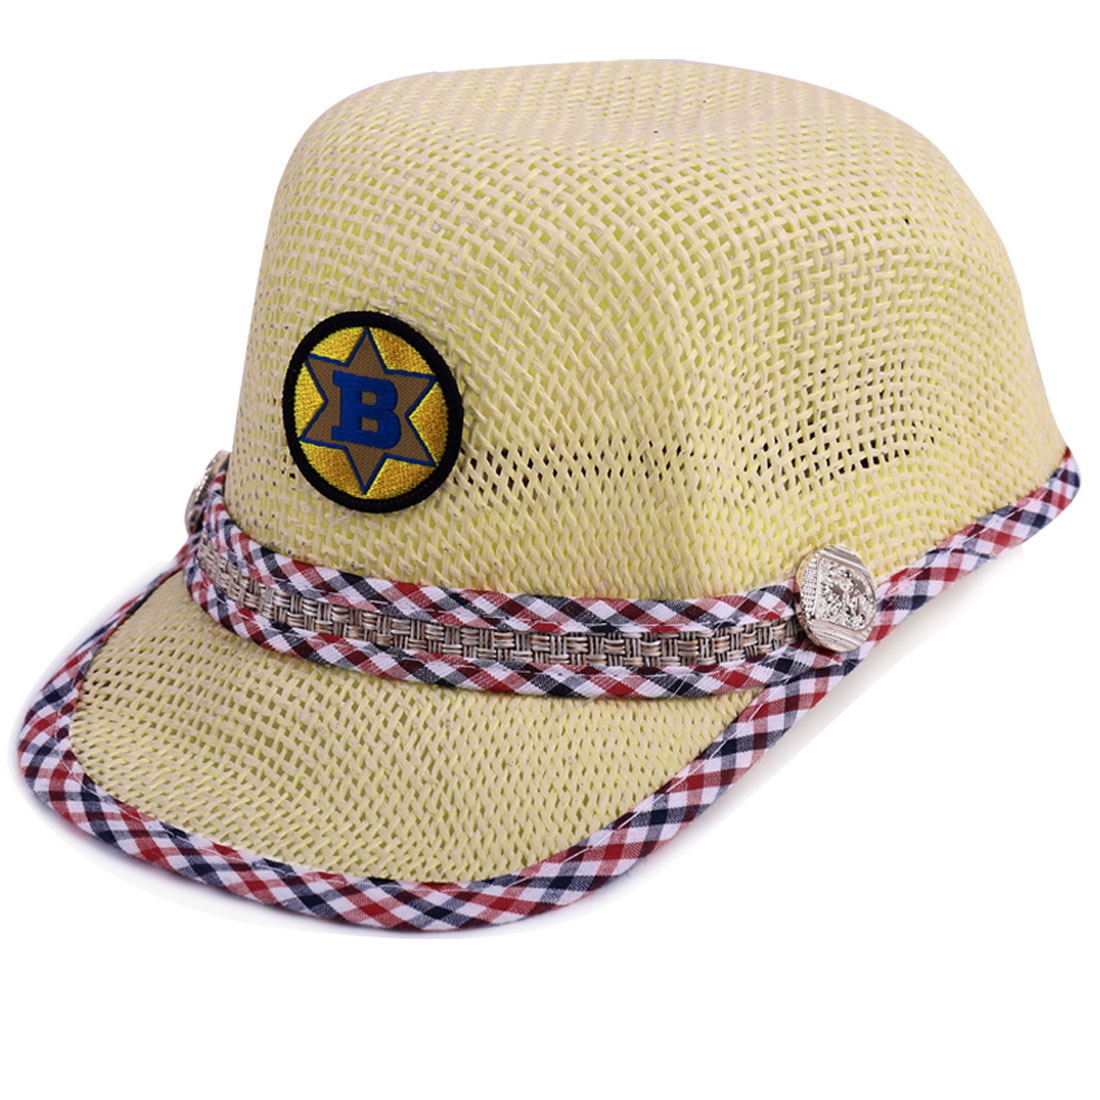 Tasharina Unisex Children Low Crown Stitching Straw Baseball Cap Beige